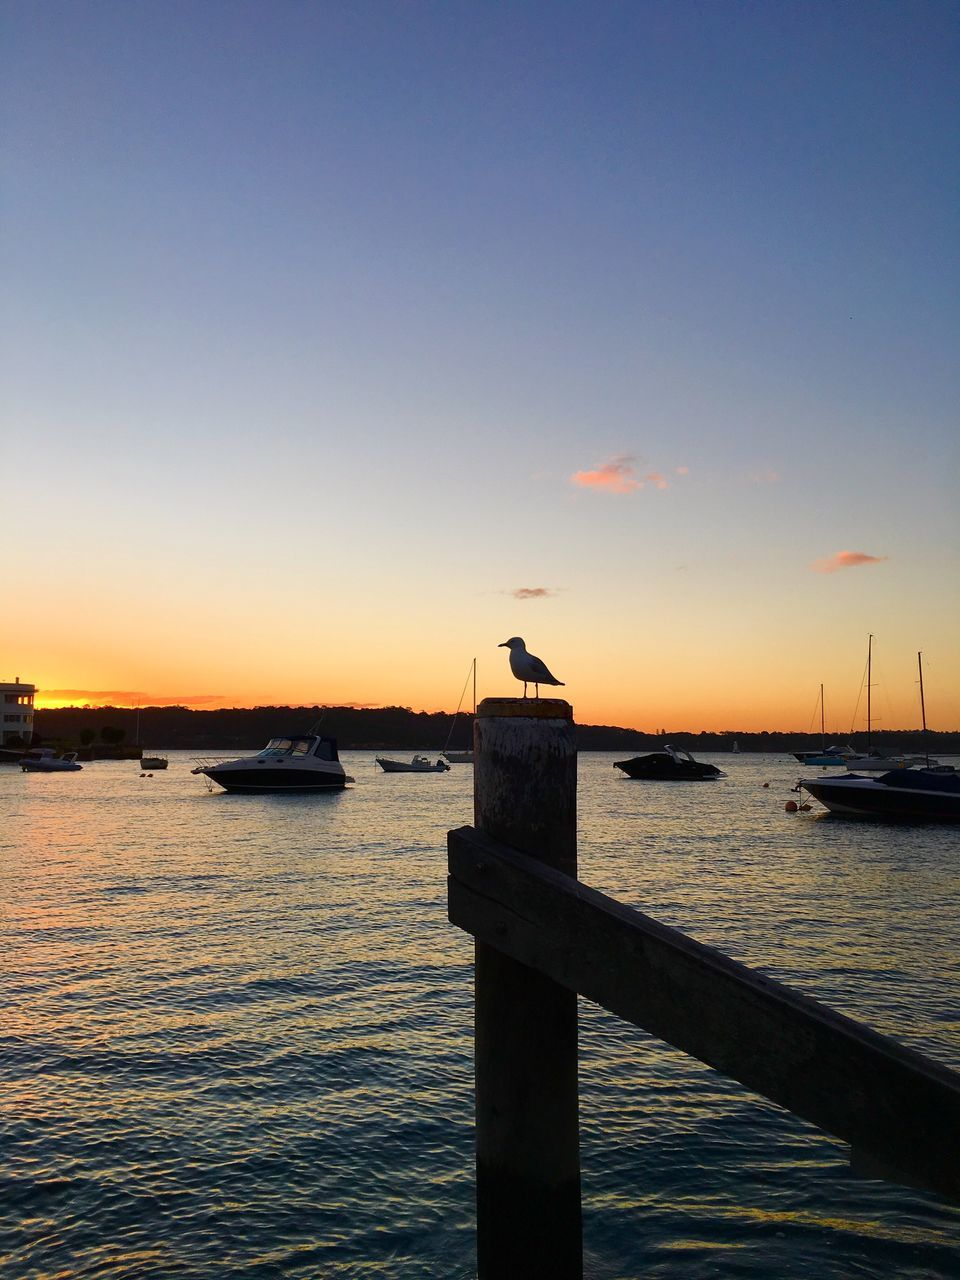 sunset, water, bird, animals in the wild, animal themes, nature, one animal, sea, silhouette, nautical vessel, sky, animal wildlife, no people, beauty in nature, tranquil scene, clear sky, tranquility, outdoors, scenics, sunlight, perching, seagull, day